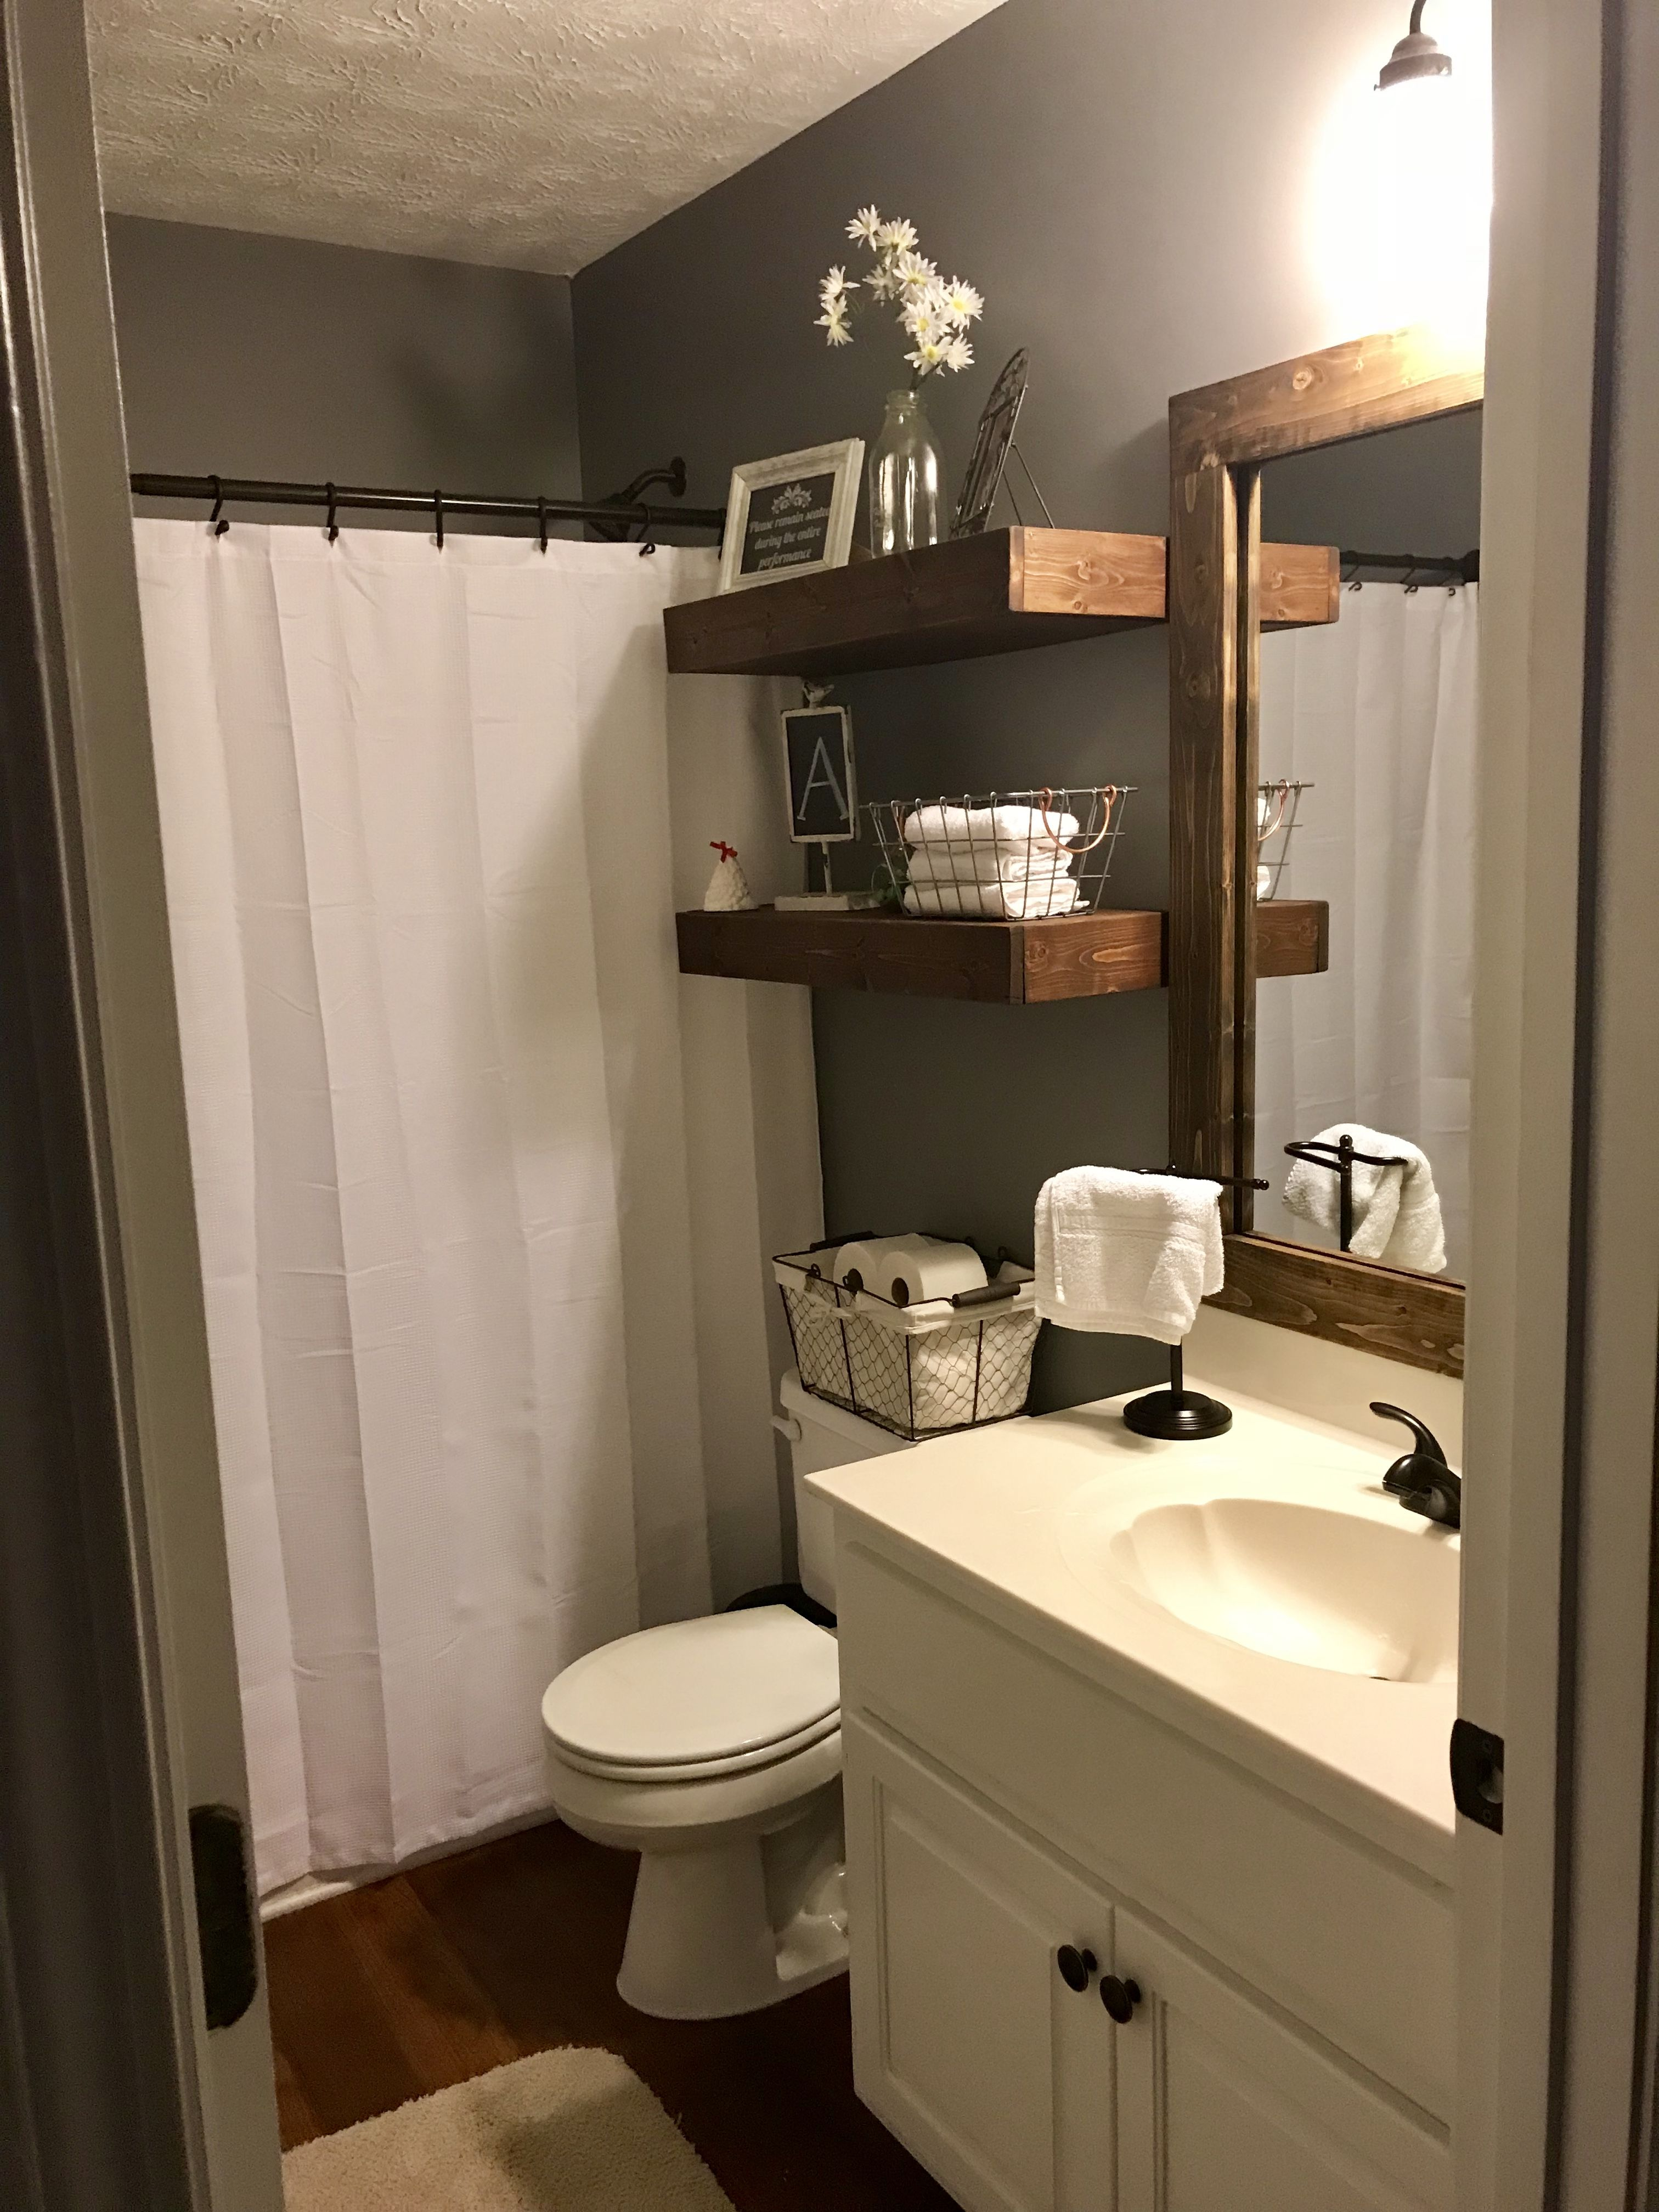 We Painted Our Guest Bathroom, Changed The Shower Curtain And Added A Frame  Around The